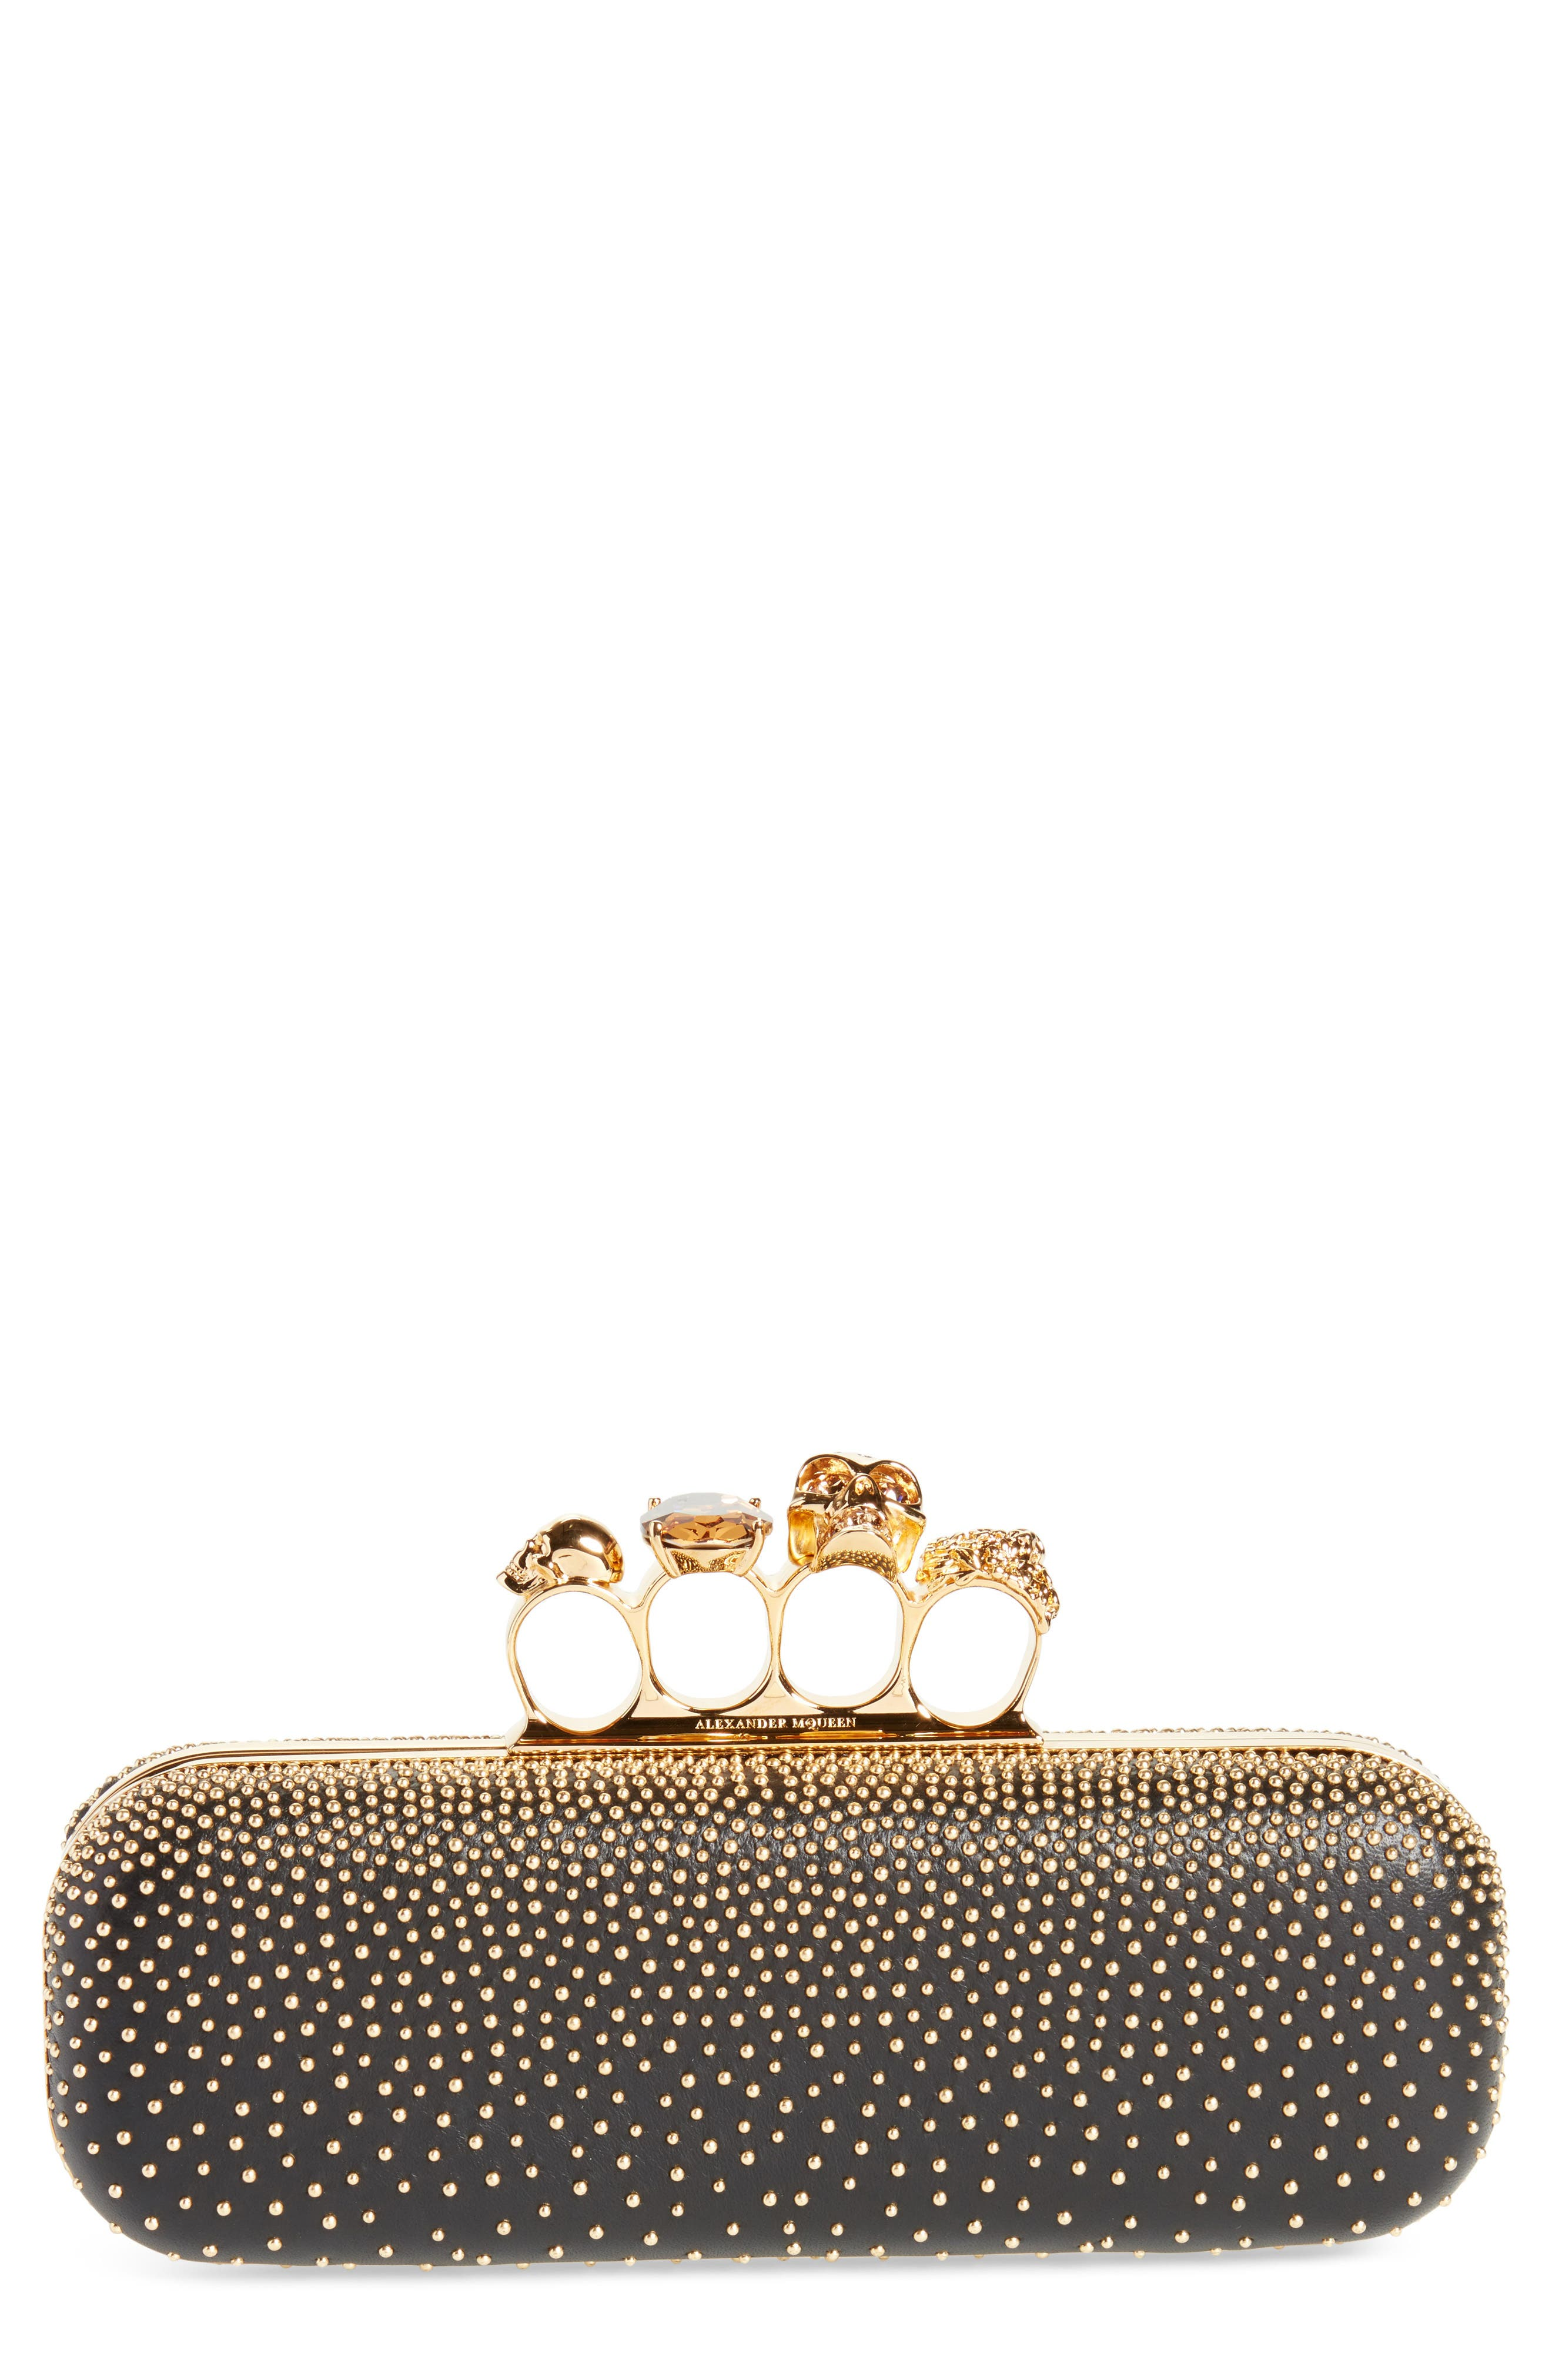 Studded Leather Knuckle Clutch,                             Main thumbnail 1, color,                             001